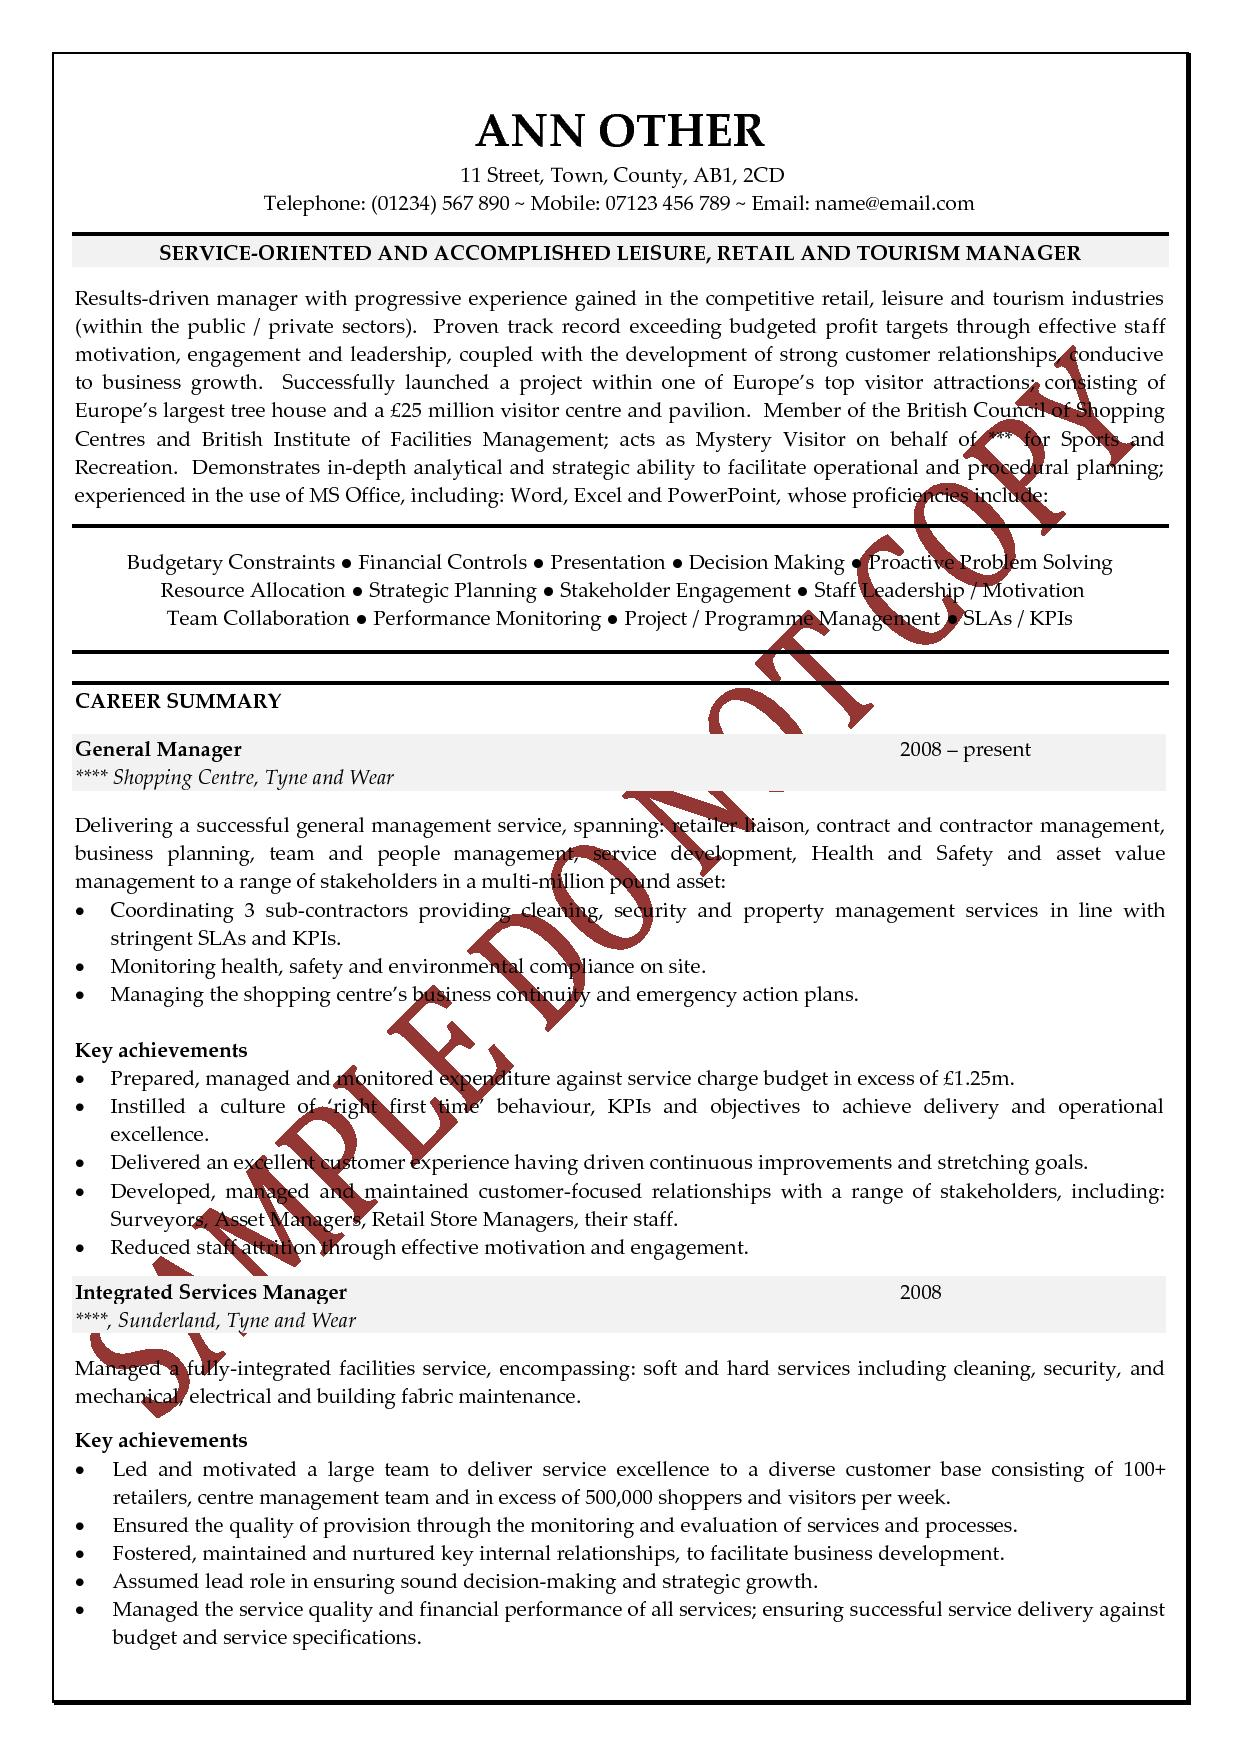 resume of online tutor profesional resume for job resume of online tutor tutor resume and cover letter examples the balance example cv cv resume